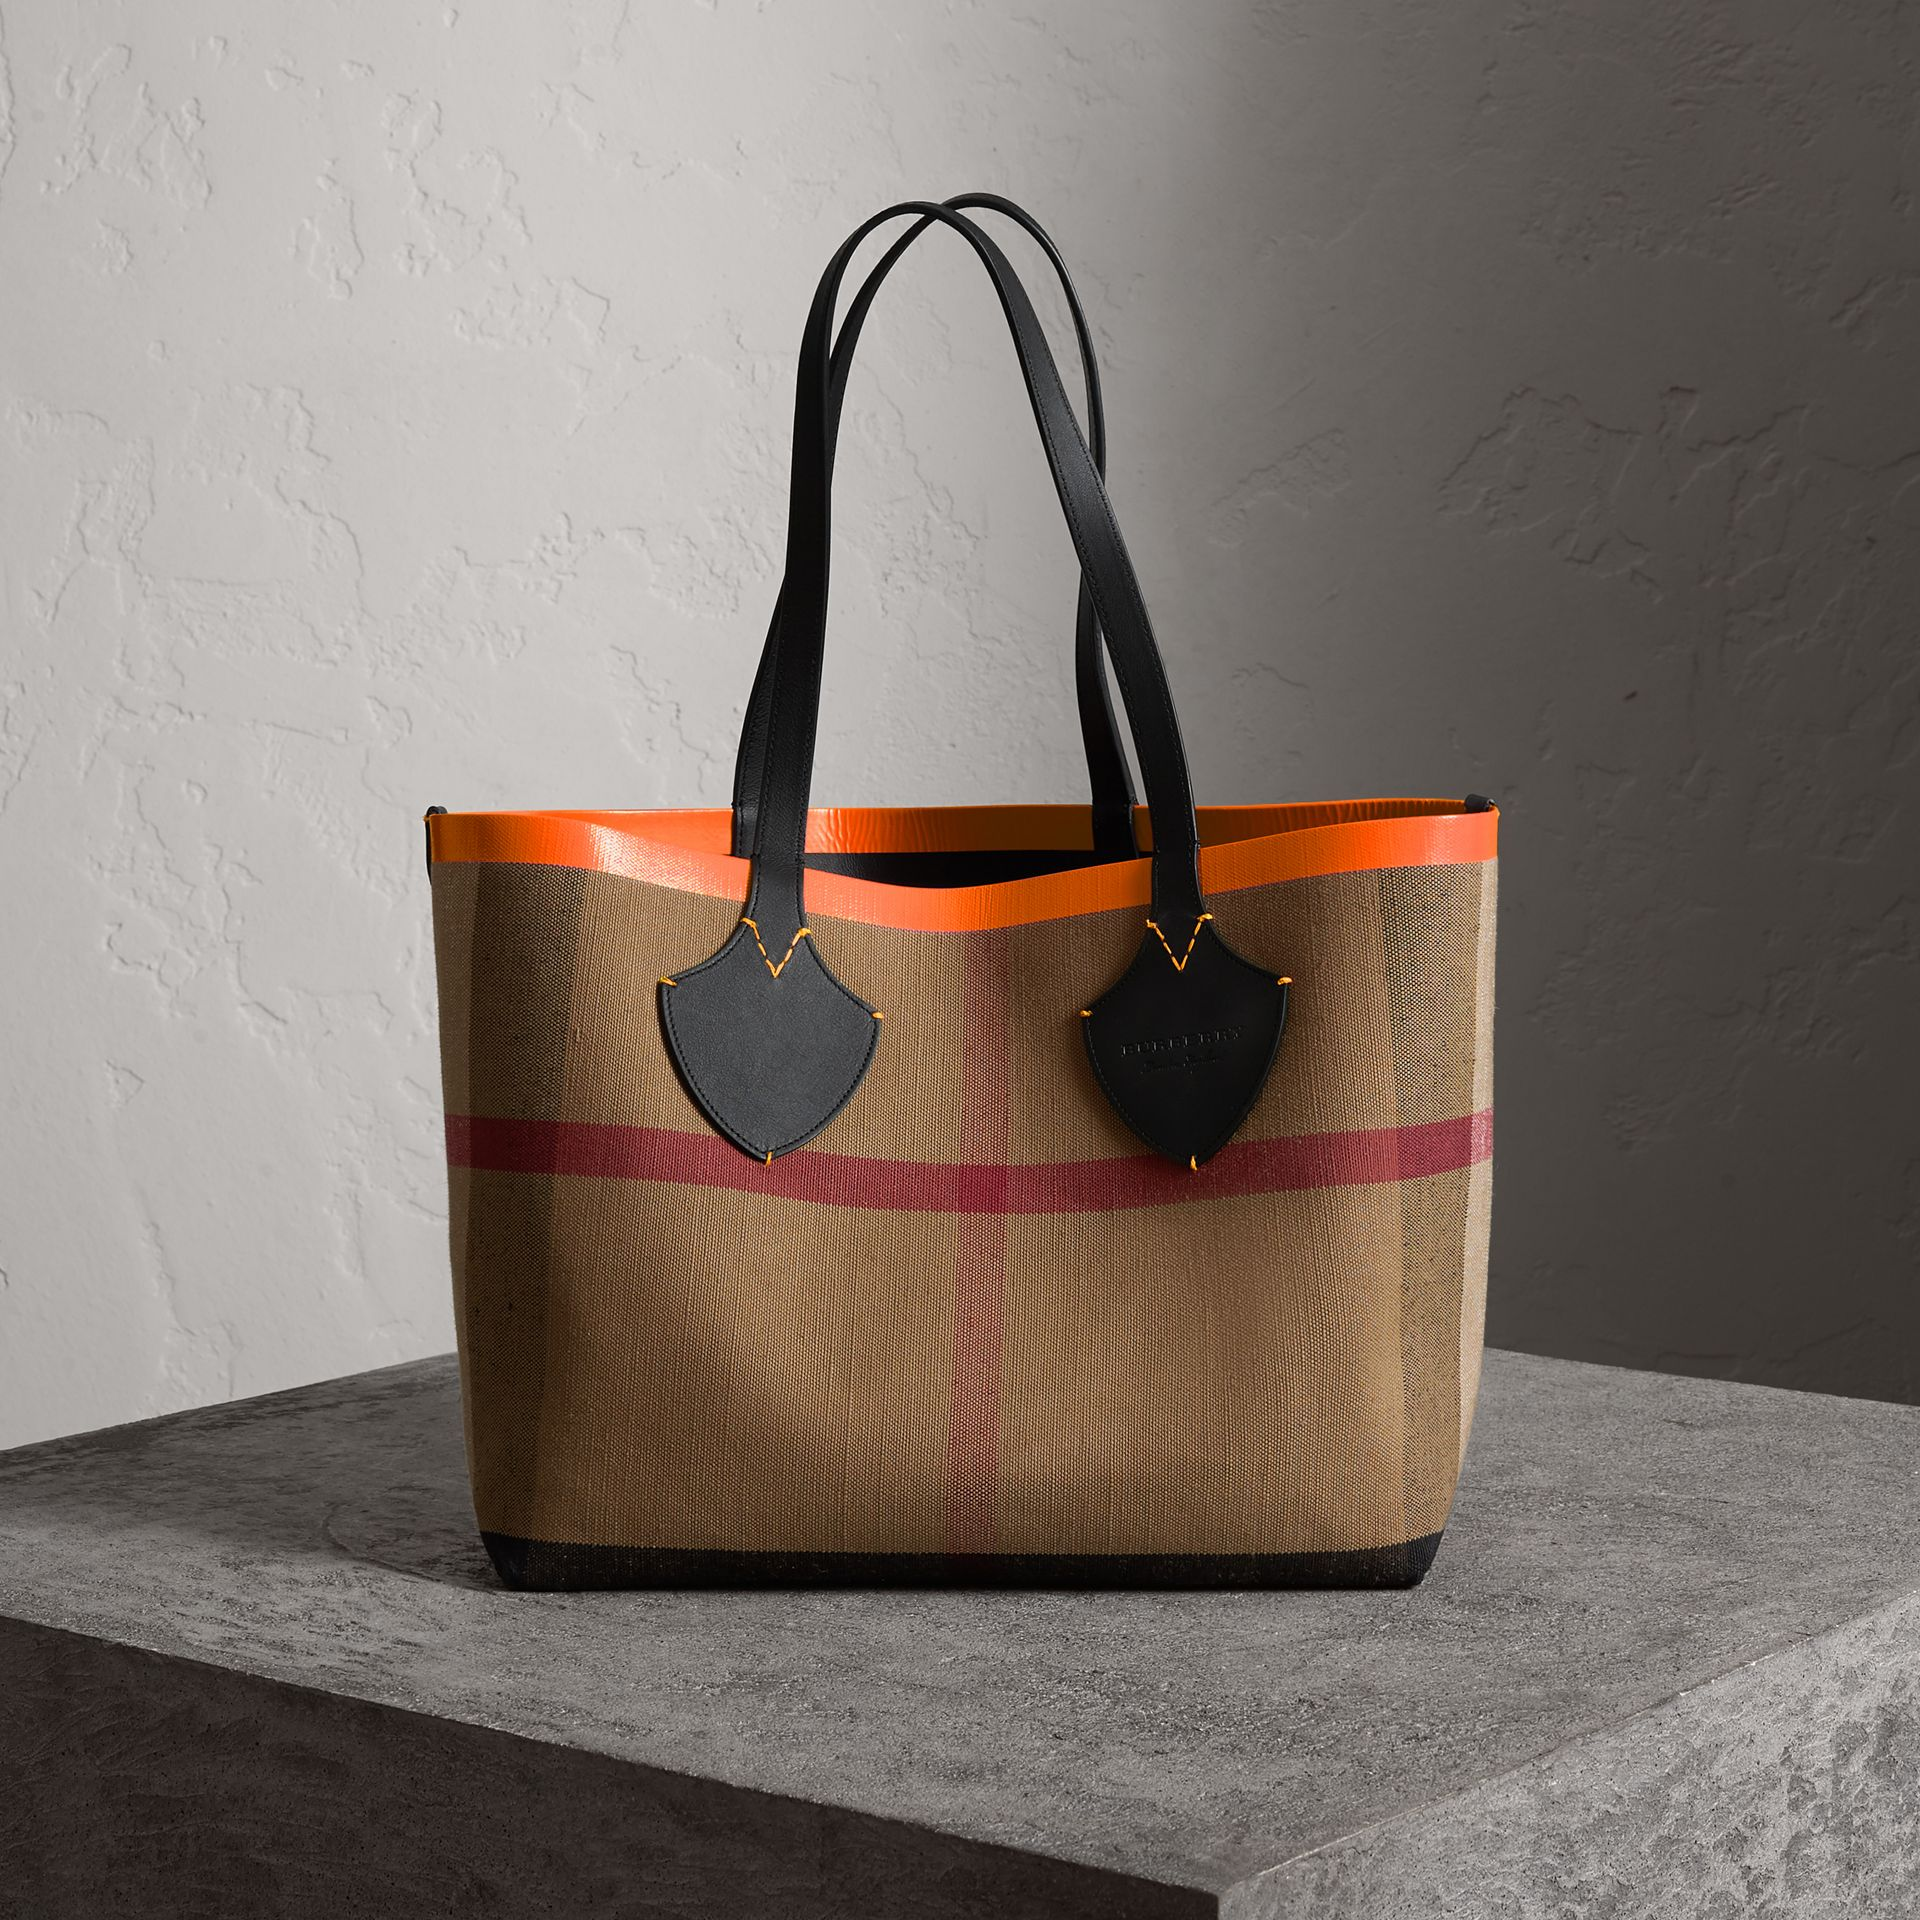 Sac tote The Giant moyen réversible en toile et en cuir (Noir/orange Néon) | Burberry - photo de la galerie 0